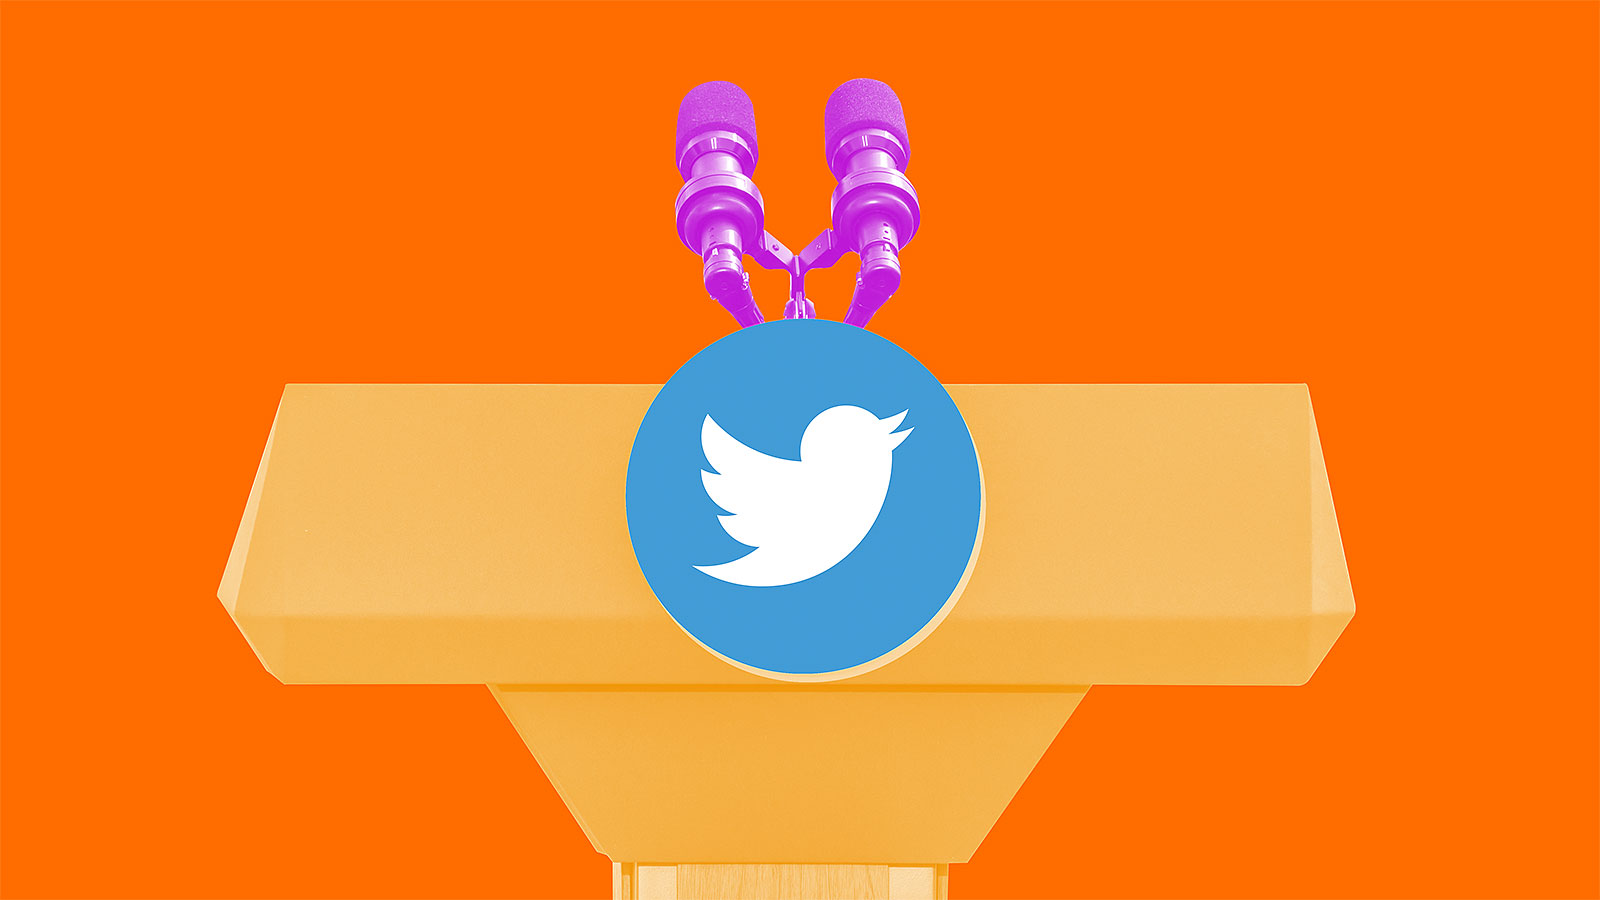 Dream job alert: You could be Twitter's 'Tweeter in Chief'